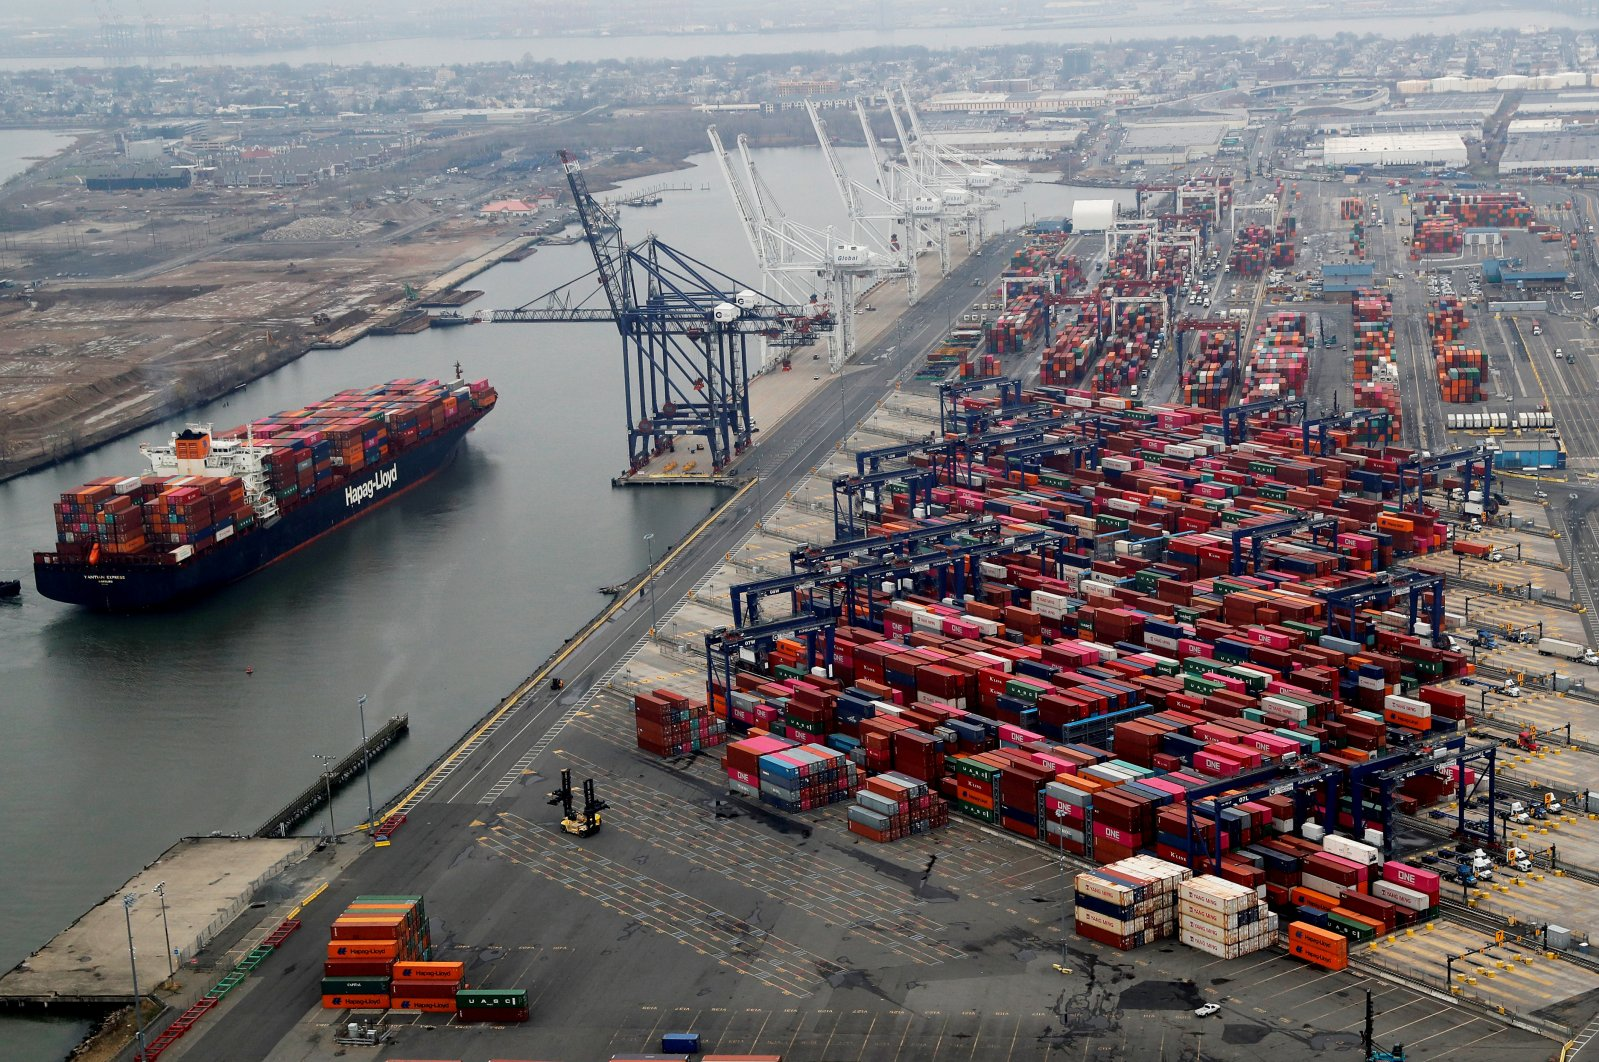 Hundreds of shipping containers are seen stacked at a pier at the Port of New York and New Jersey in Elizabeth, New Jersey, U.S., March 30, 2020. (Reuters Photo)